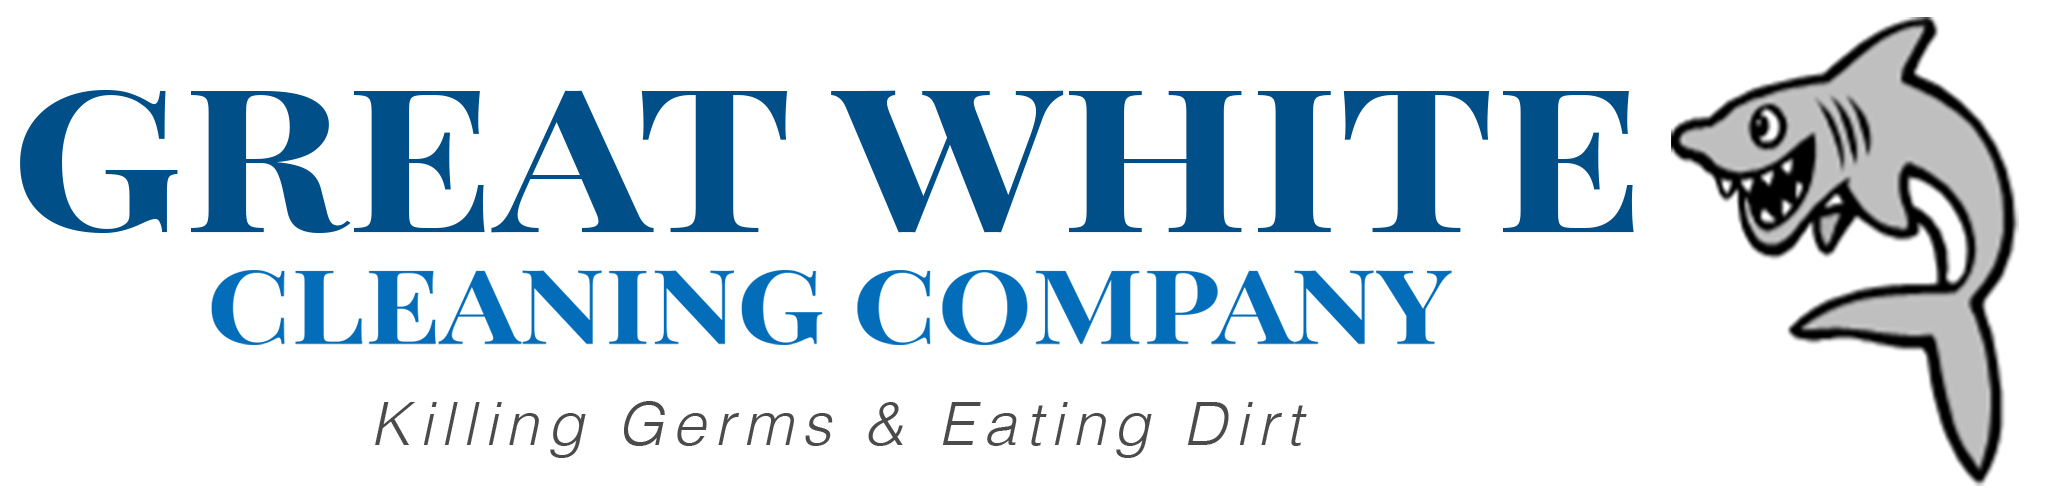 Great White Cleaning Company